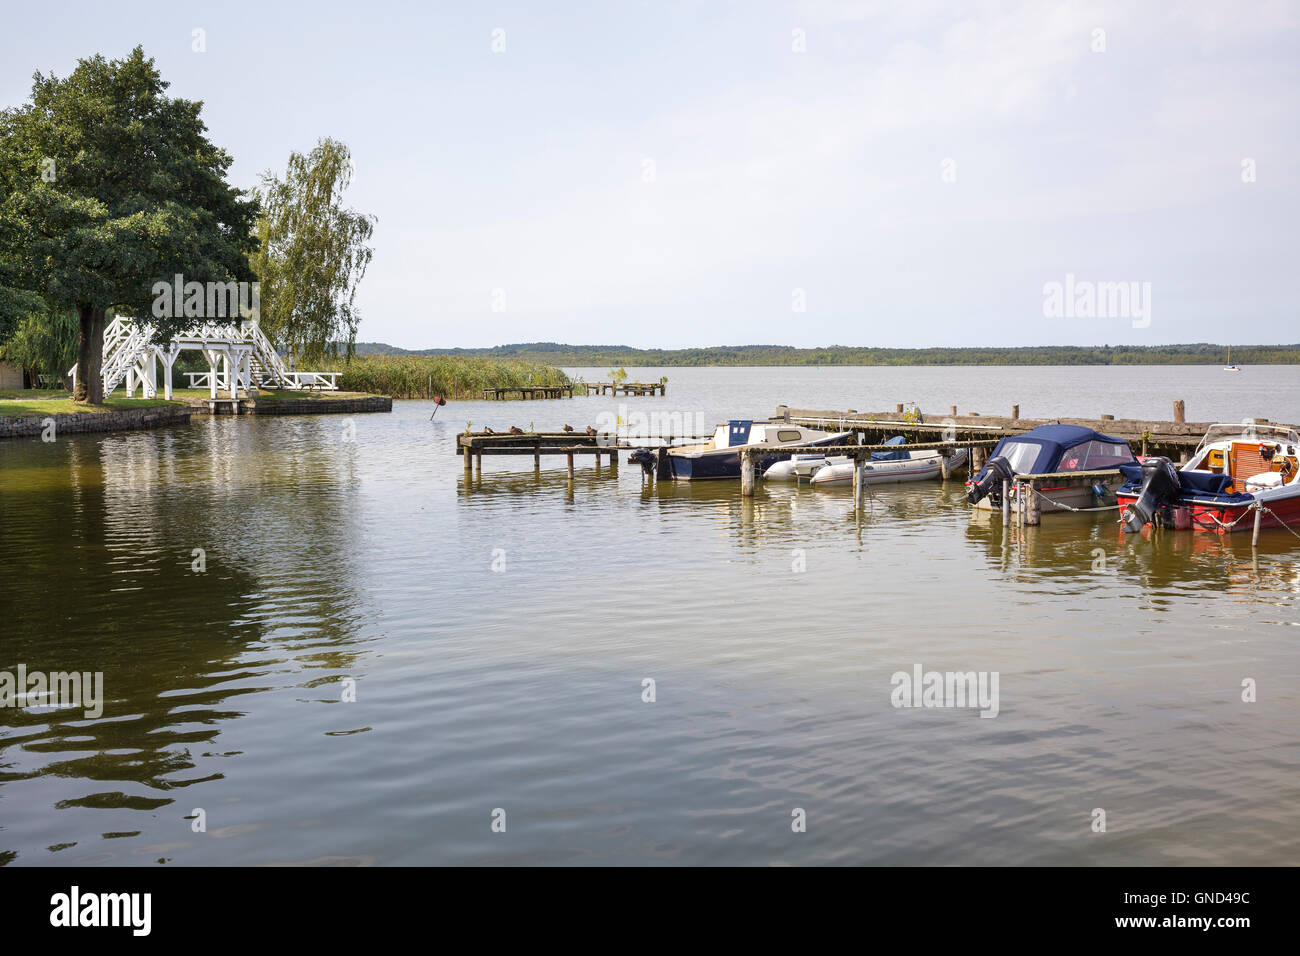 Zierker See with the Weisse Bruecke – white bridge, Neustrelitz, Mecklenburg-Vorpommern, Germany - Stock Image